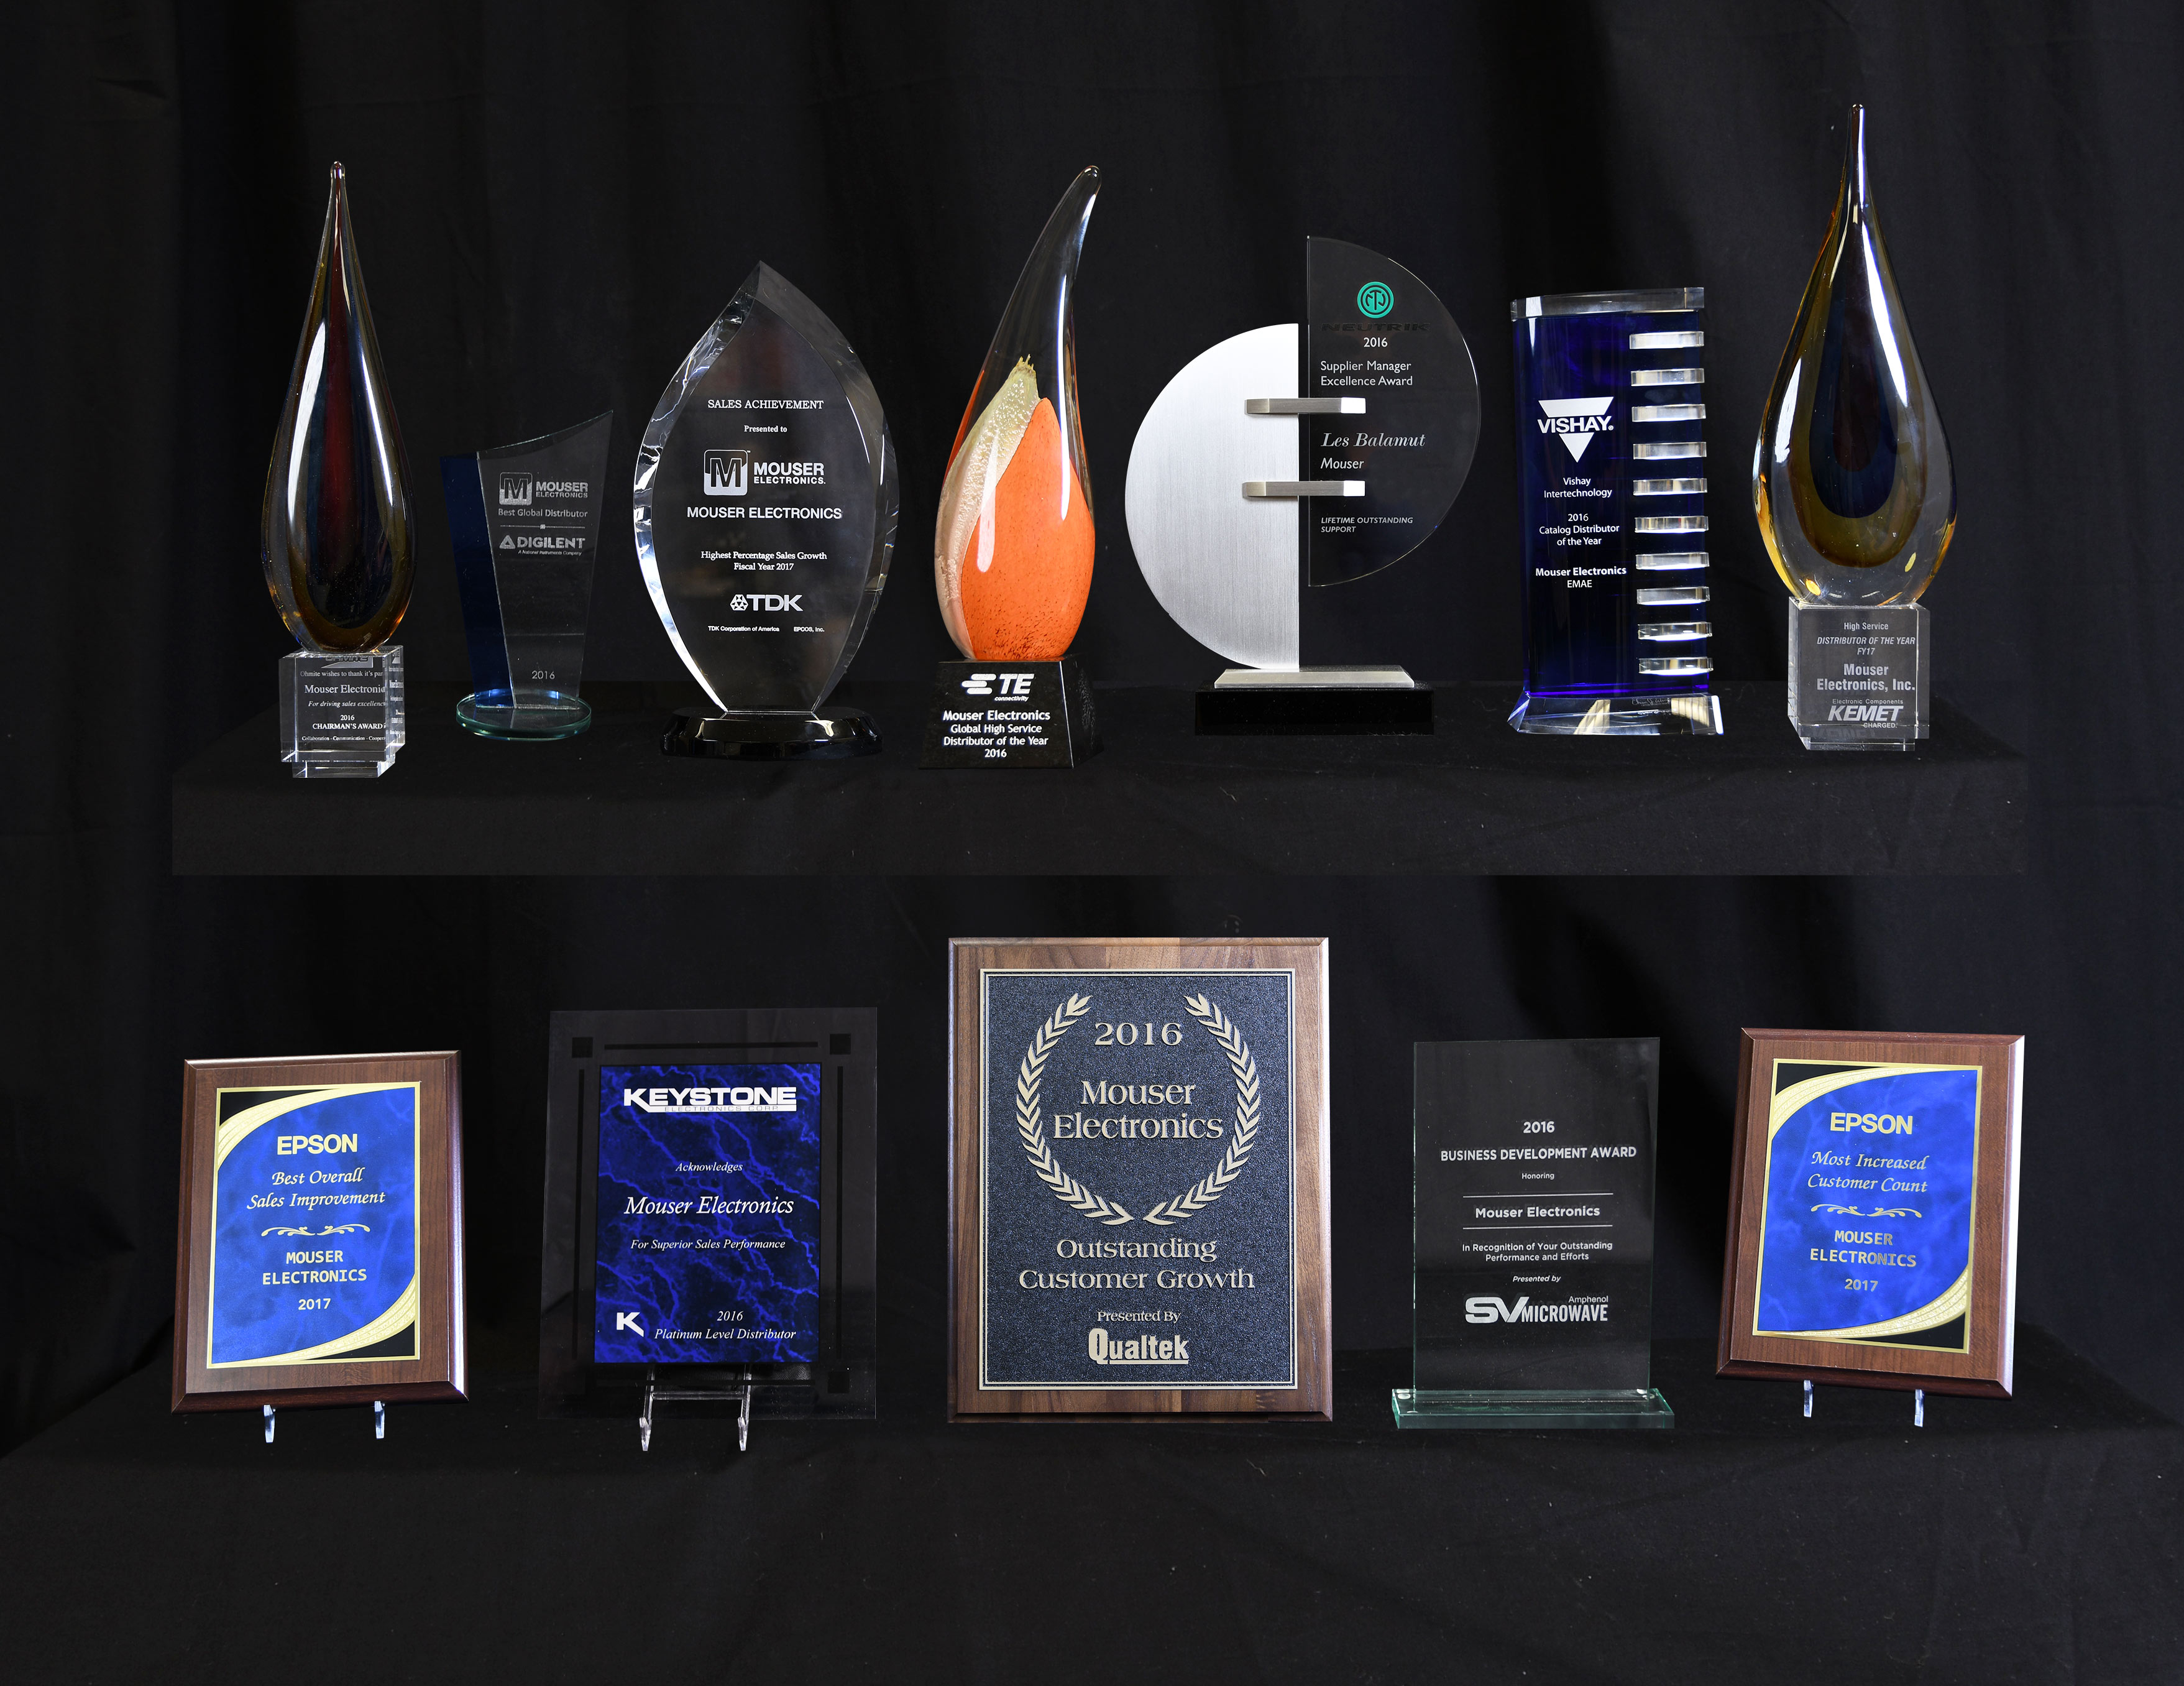 Mouser Electronics Recognized with Top Awards for Excellence From its Supplier Partners